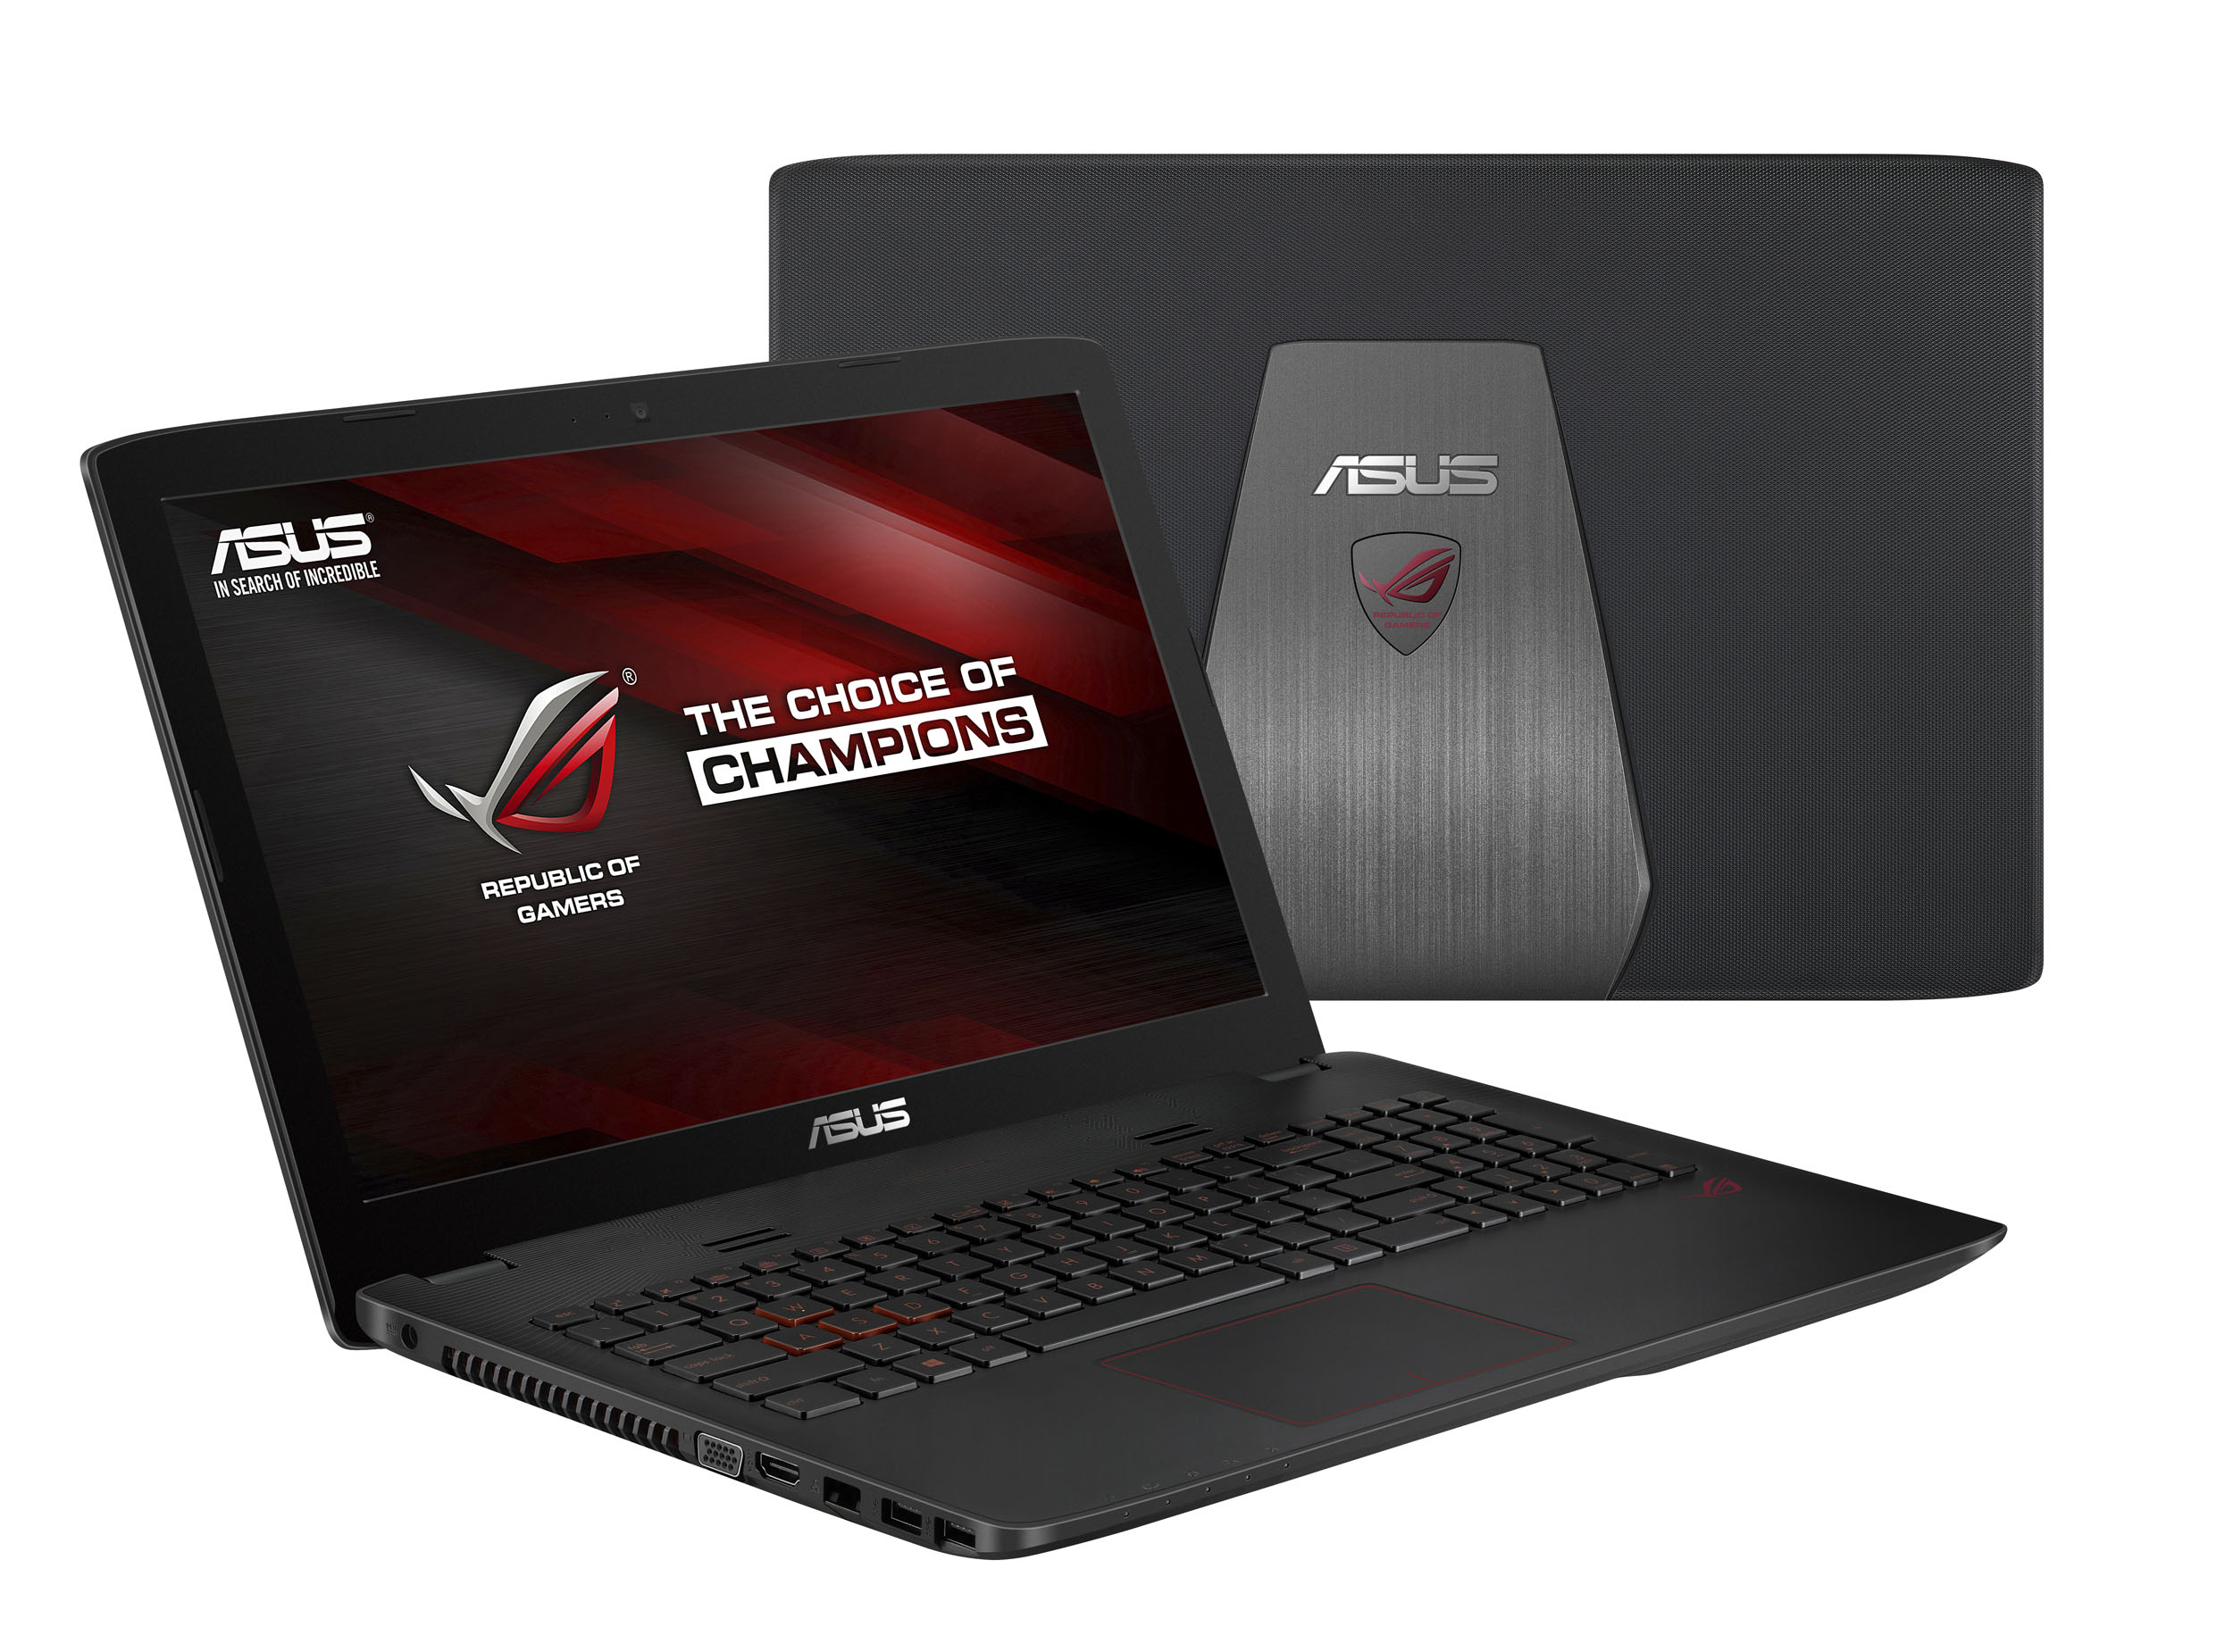 Asus Rog Gl552 Gaming Laptop Released Features Specifications Price